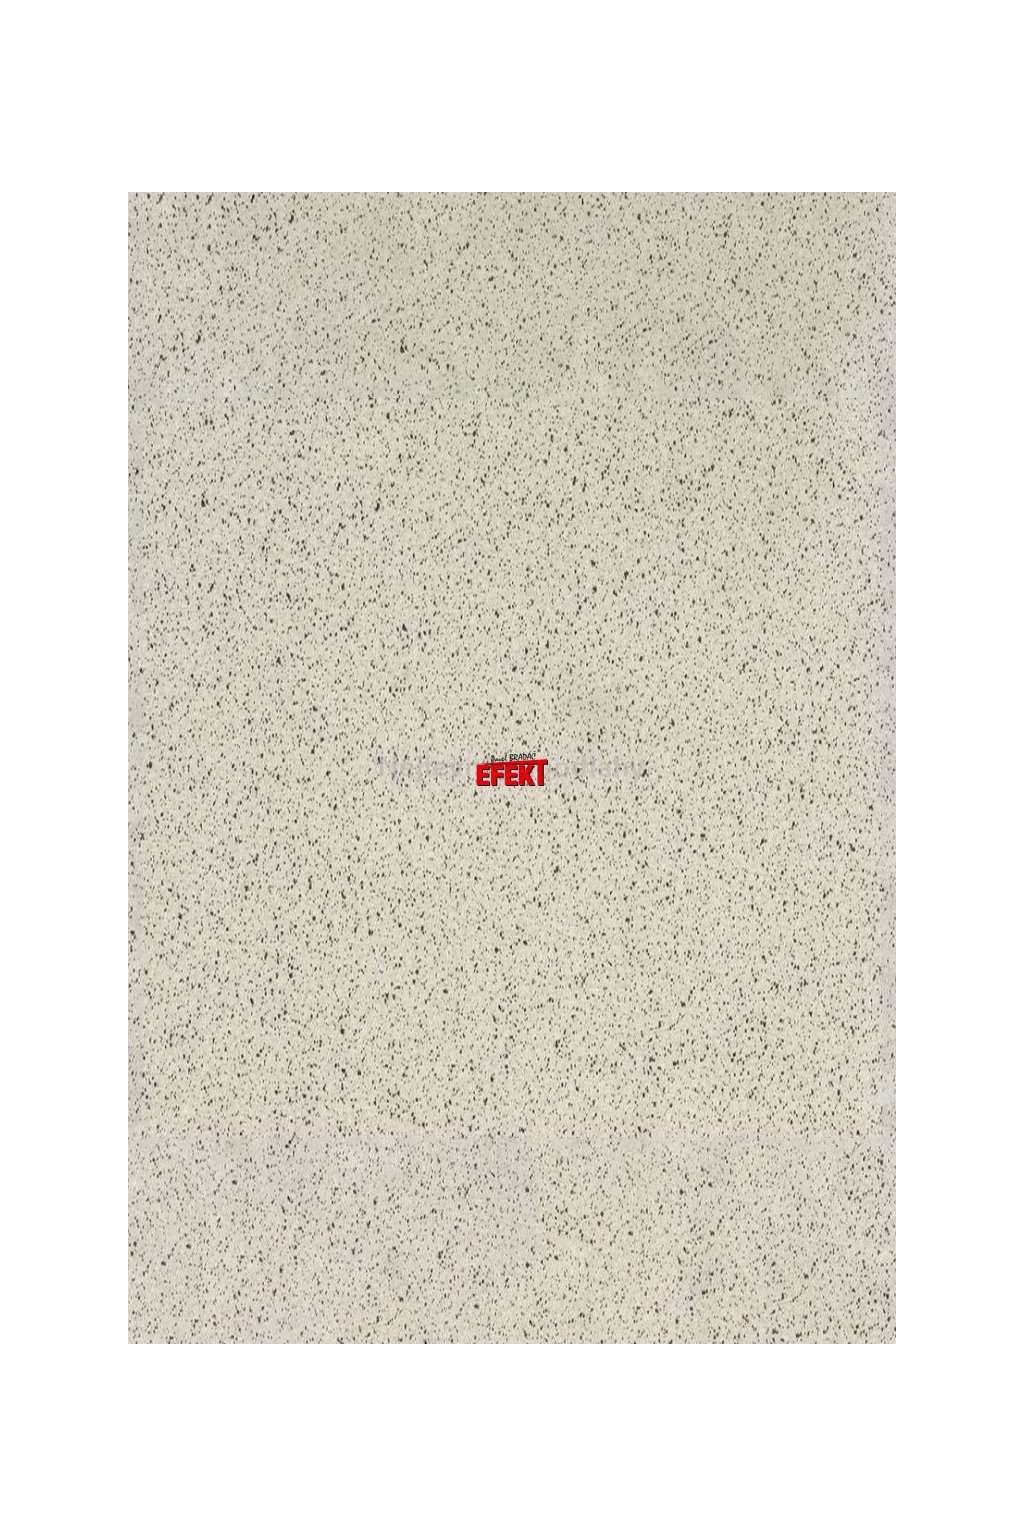 Gerflor Timberline Pixel Taupe 2176